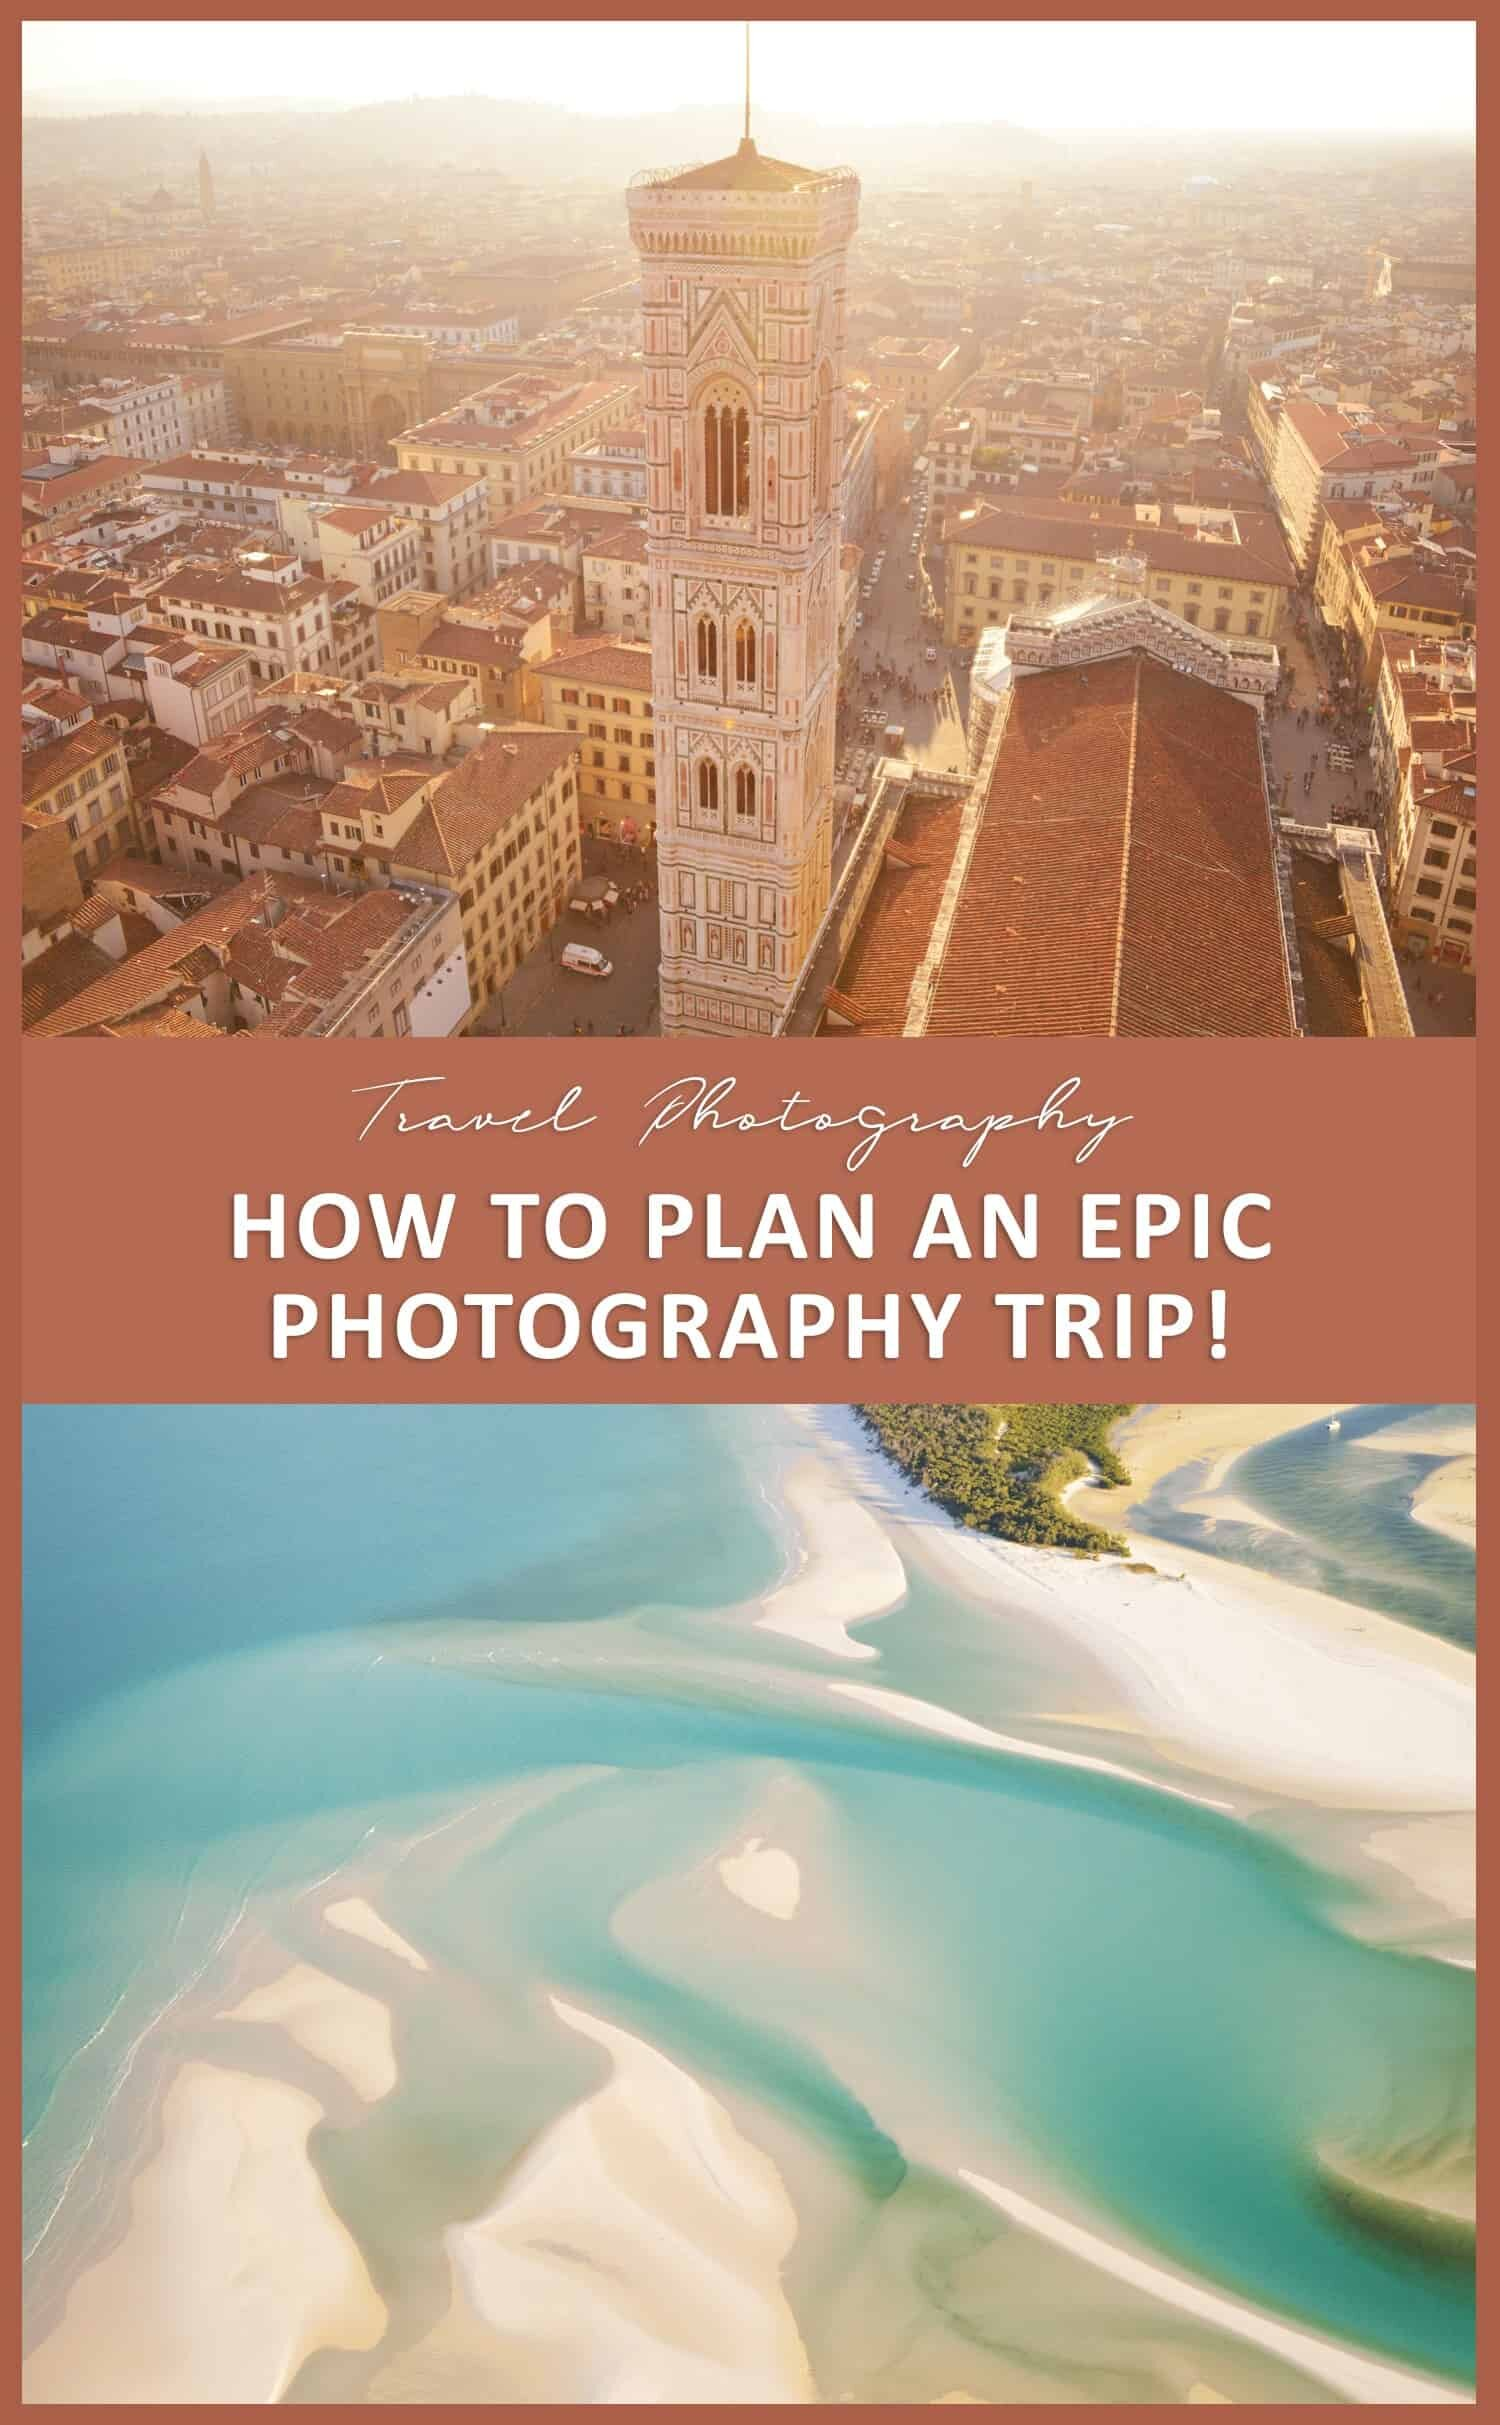 How to Plan a Photography Trip - Travel Photography Tips